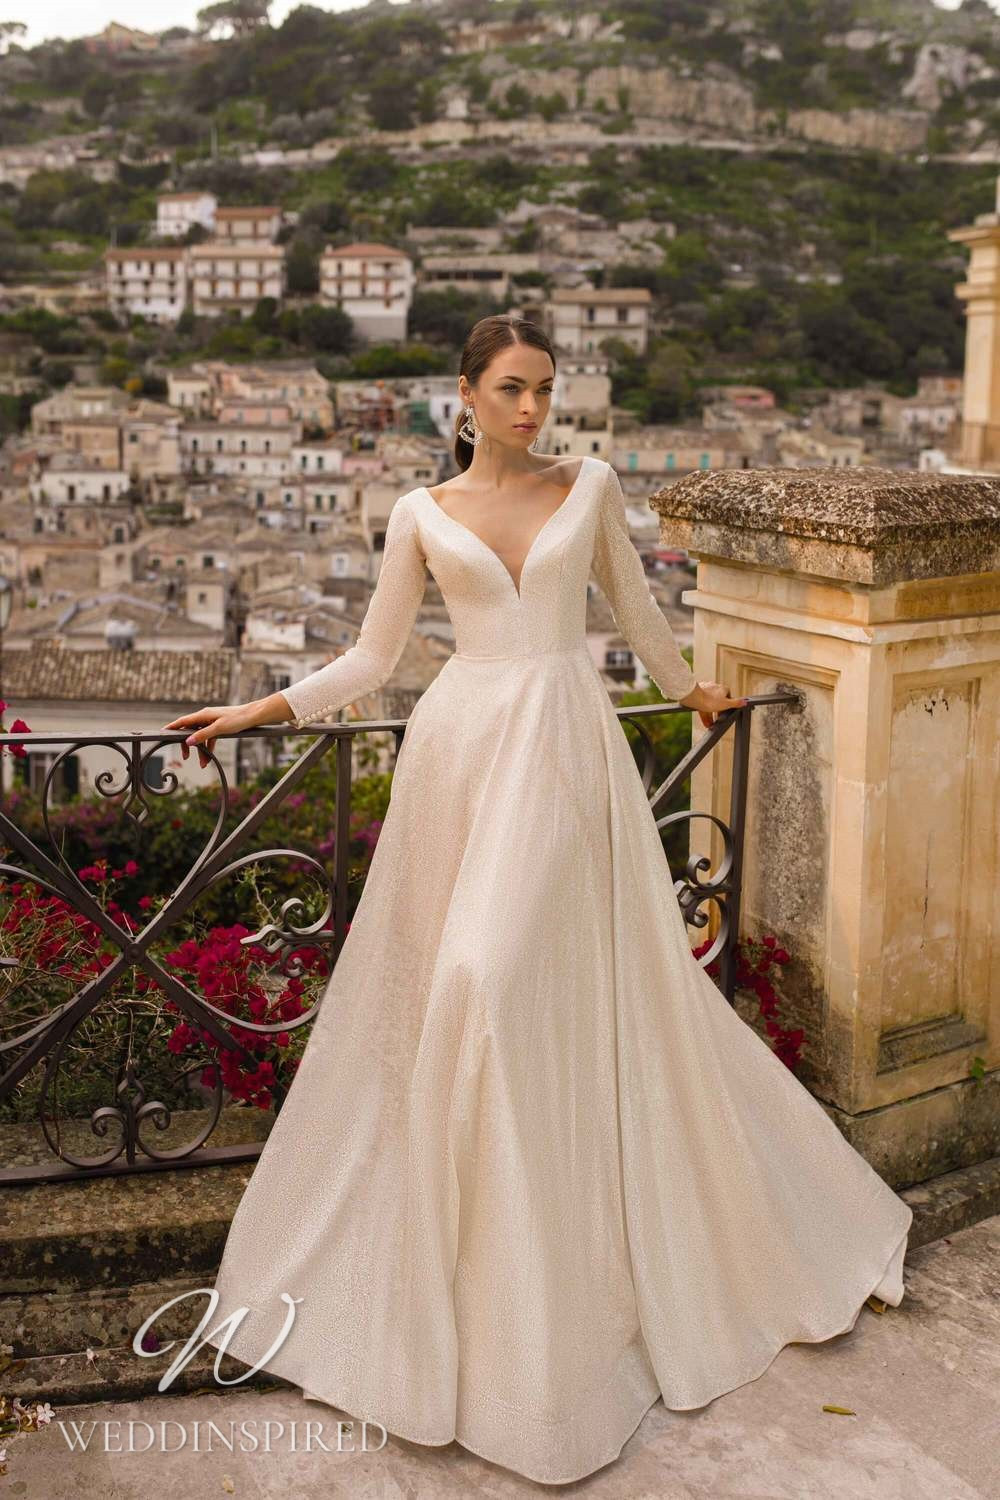 A Lussano 2021 sparkly champagne A-line wedding dress with long sleeves